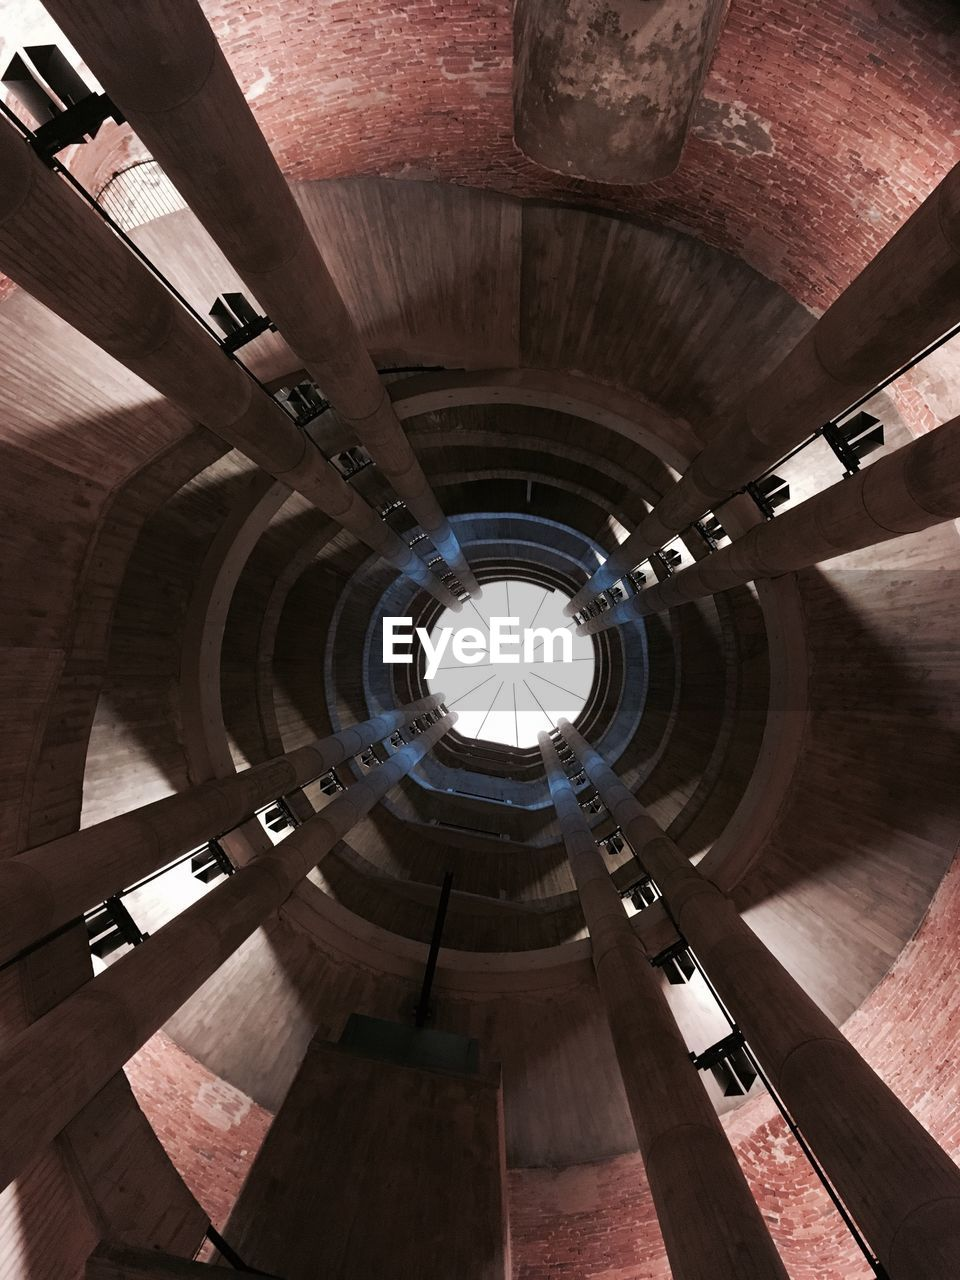 HIGH ANGLE VIEW OF SPIRAL STAIRCASE IN CORRIDOR